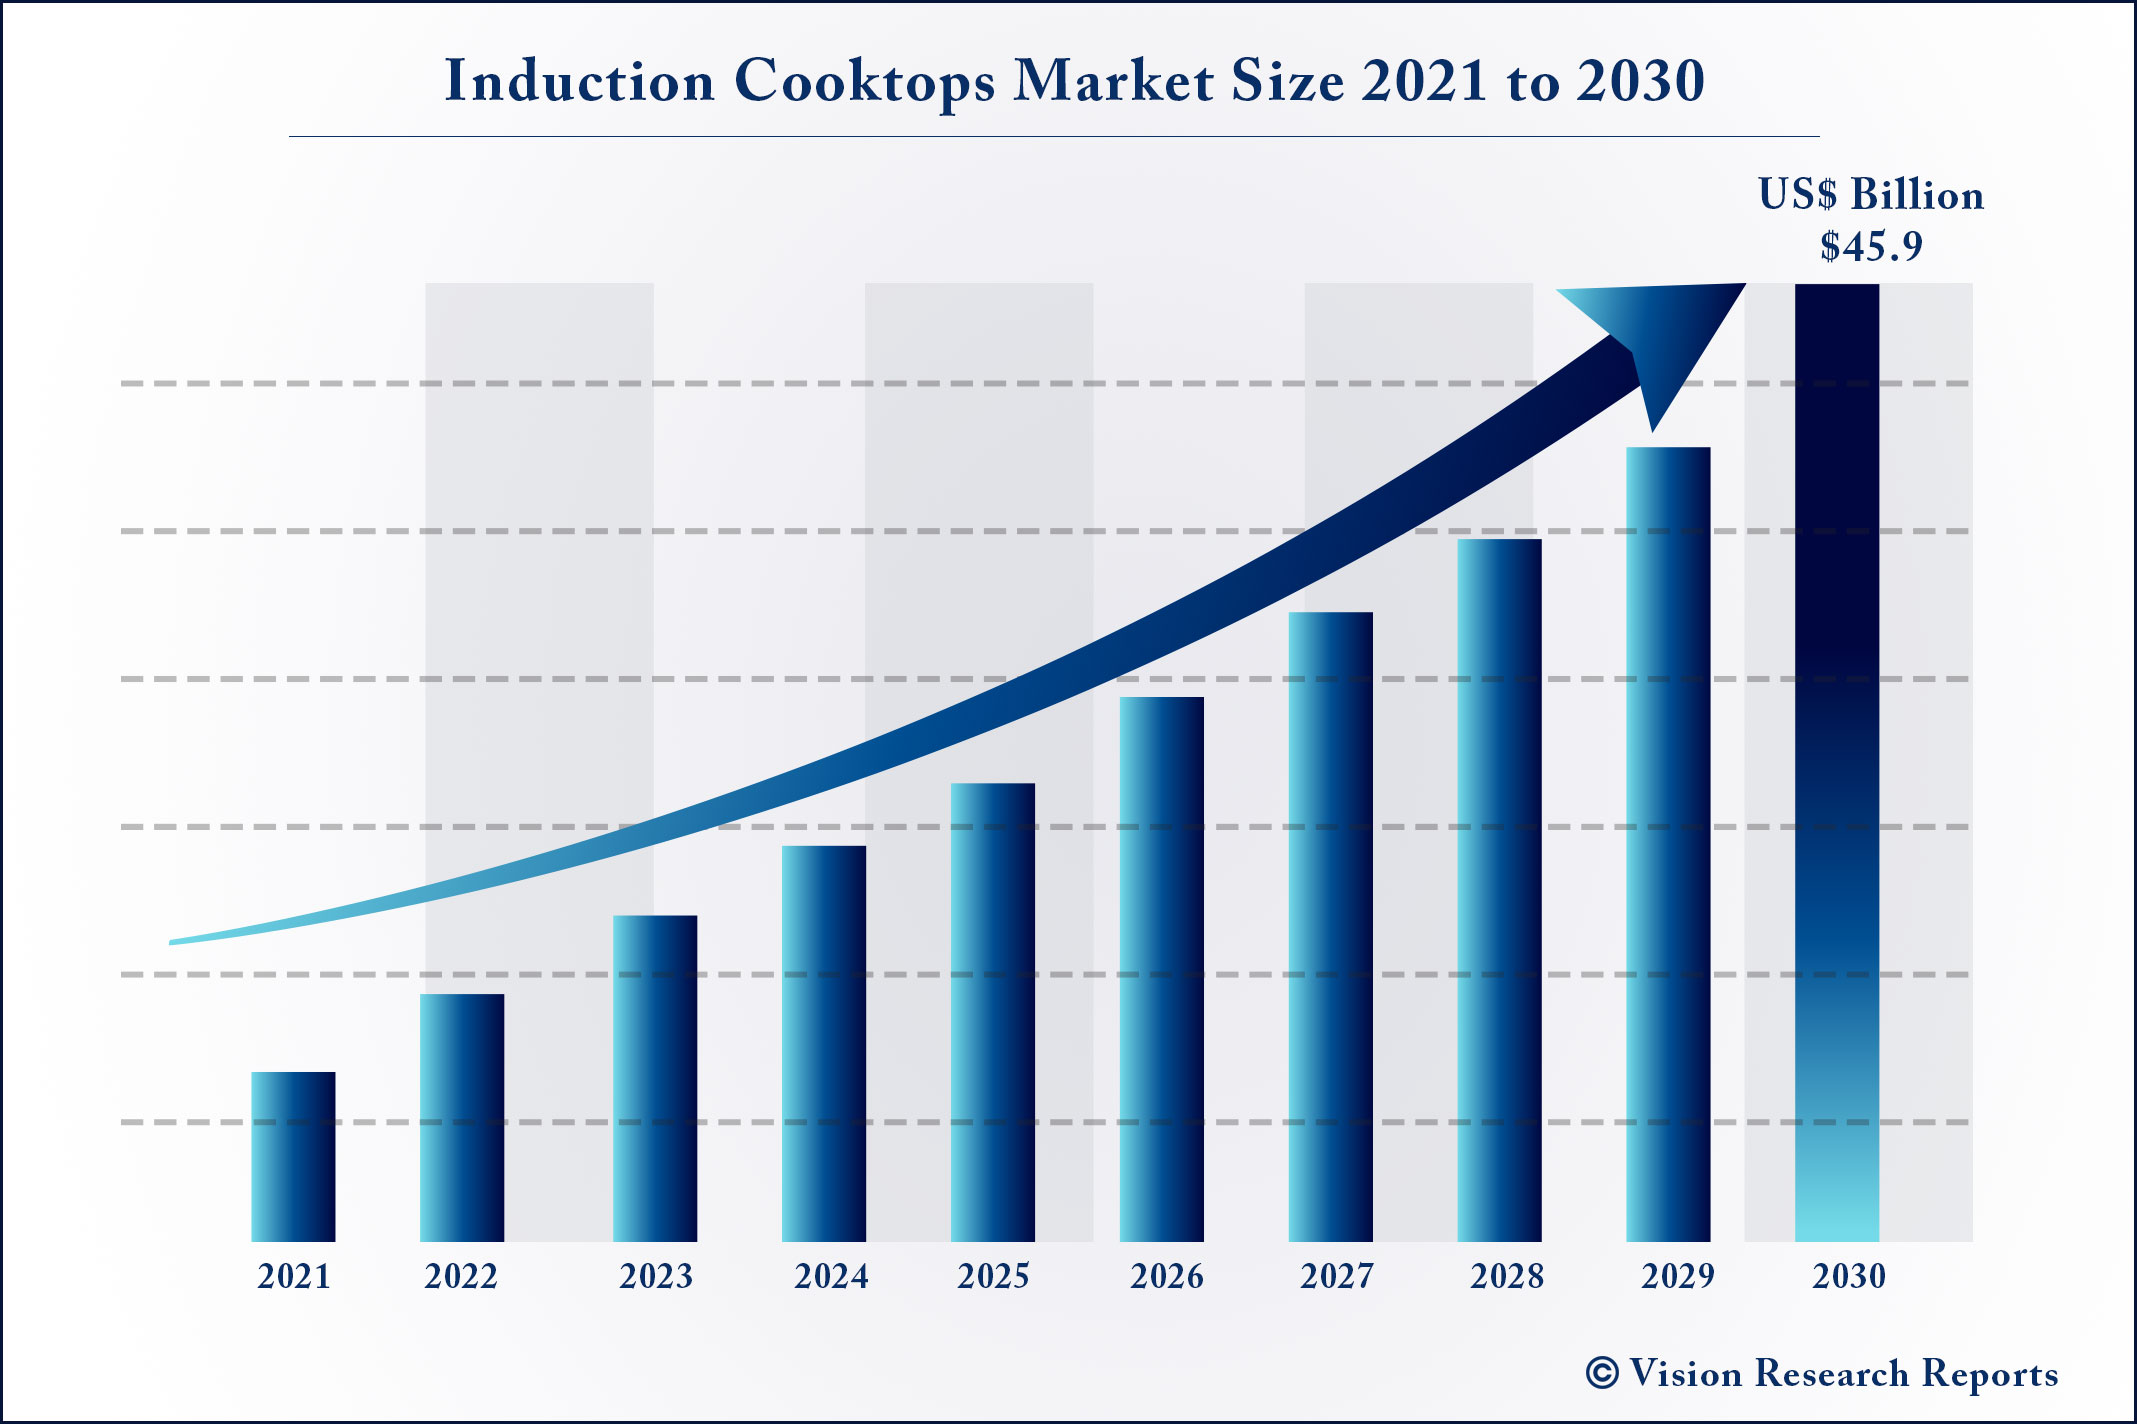 Induction Cooktops Market Size 2021 to 2030